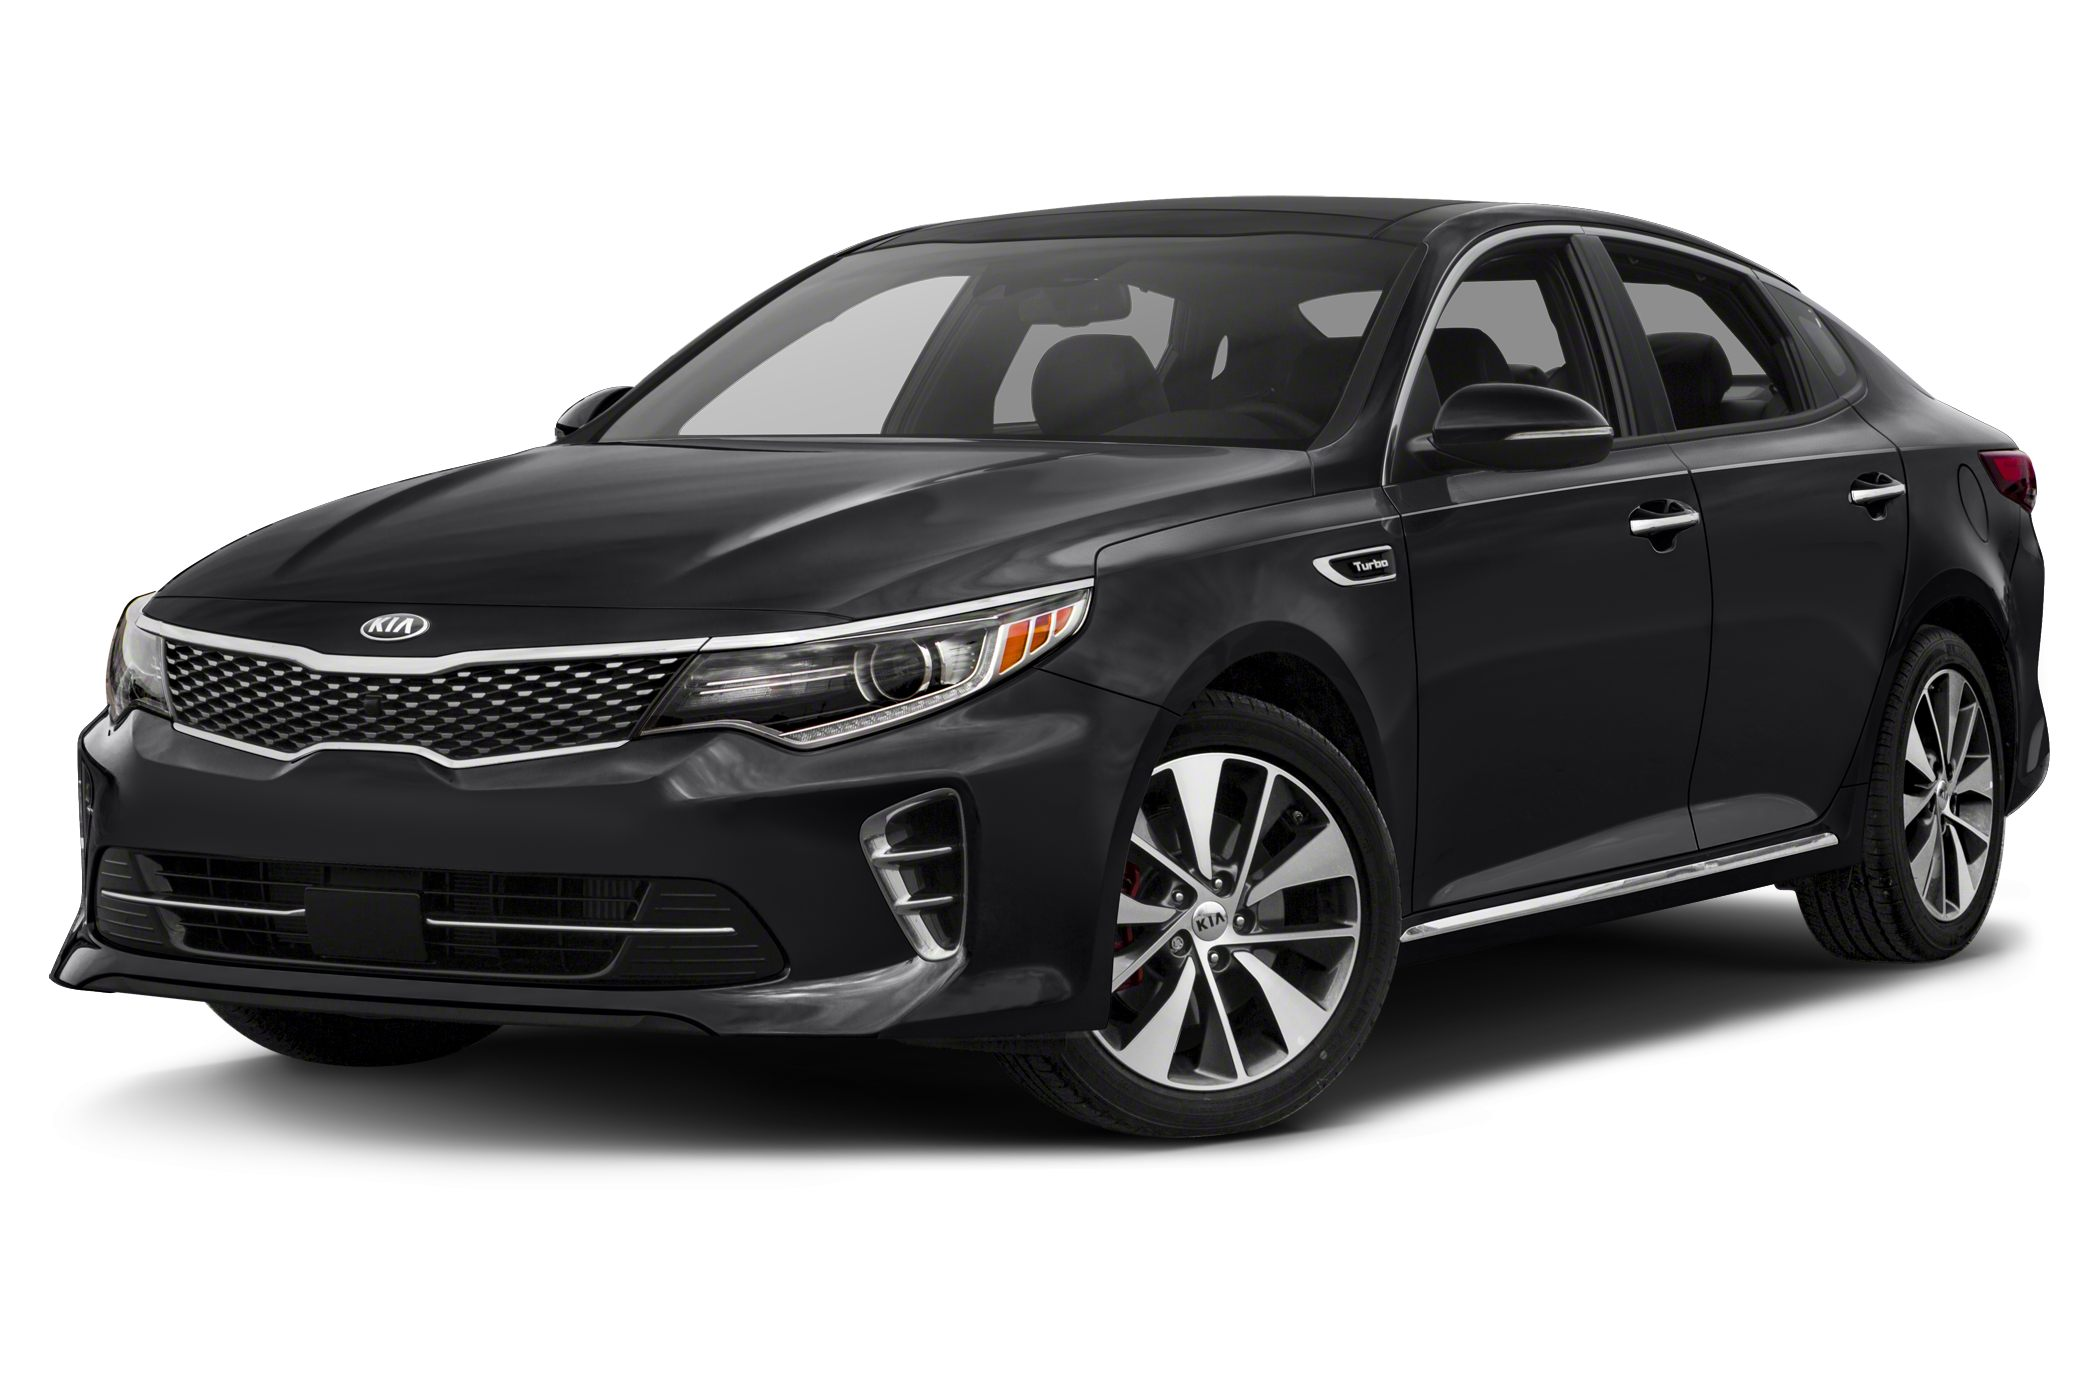 2016 Kia Optima SXL Turbo Miles 12Color Black Stock K16043 VIN 5XXGV4L28GG115040